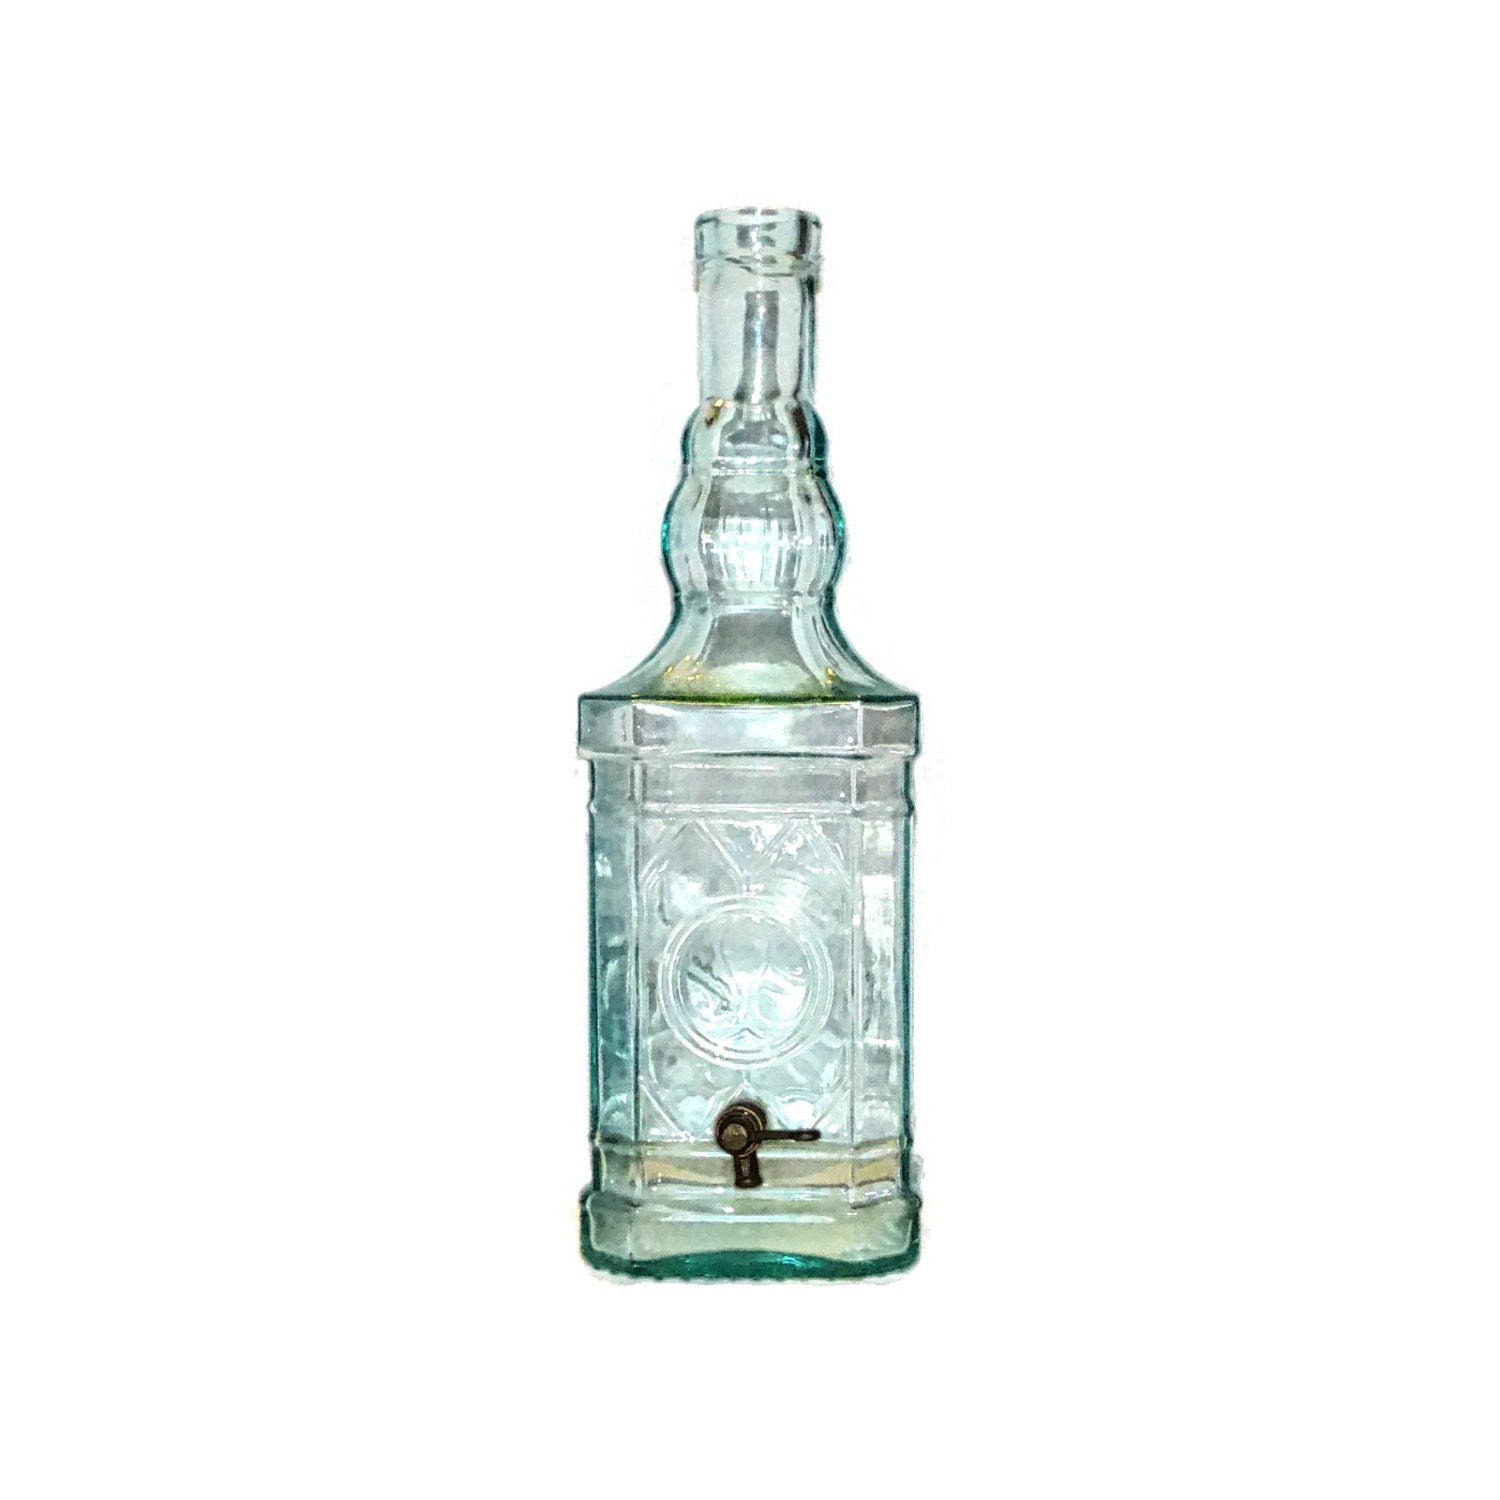 Vintage glass drink dispenser with spigot